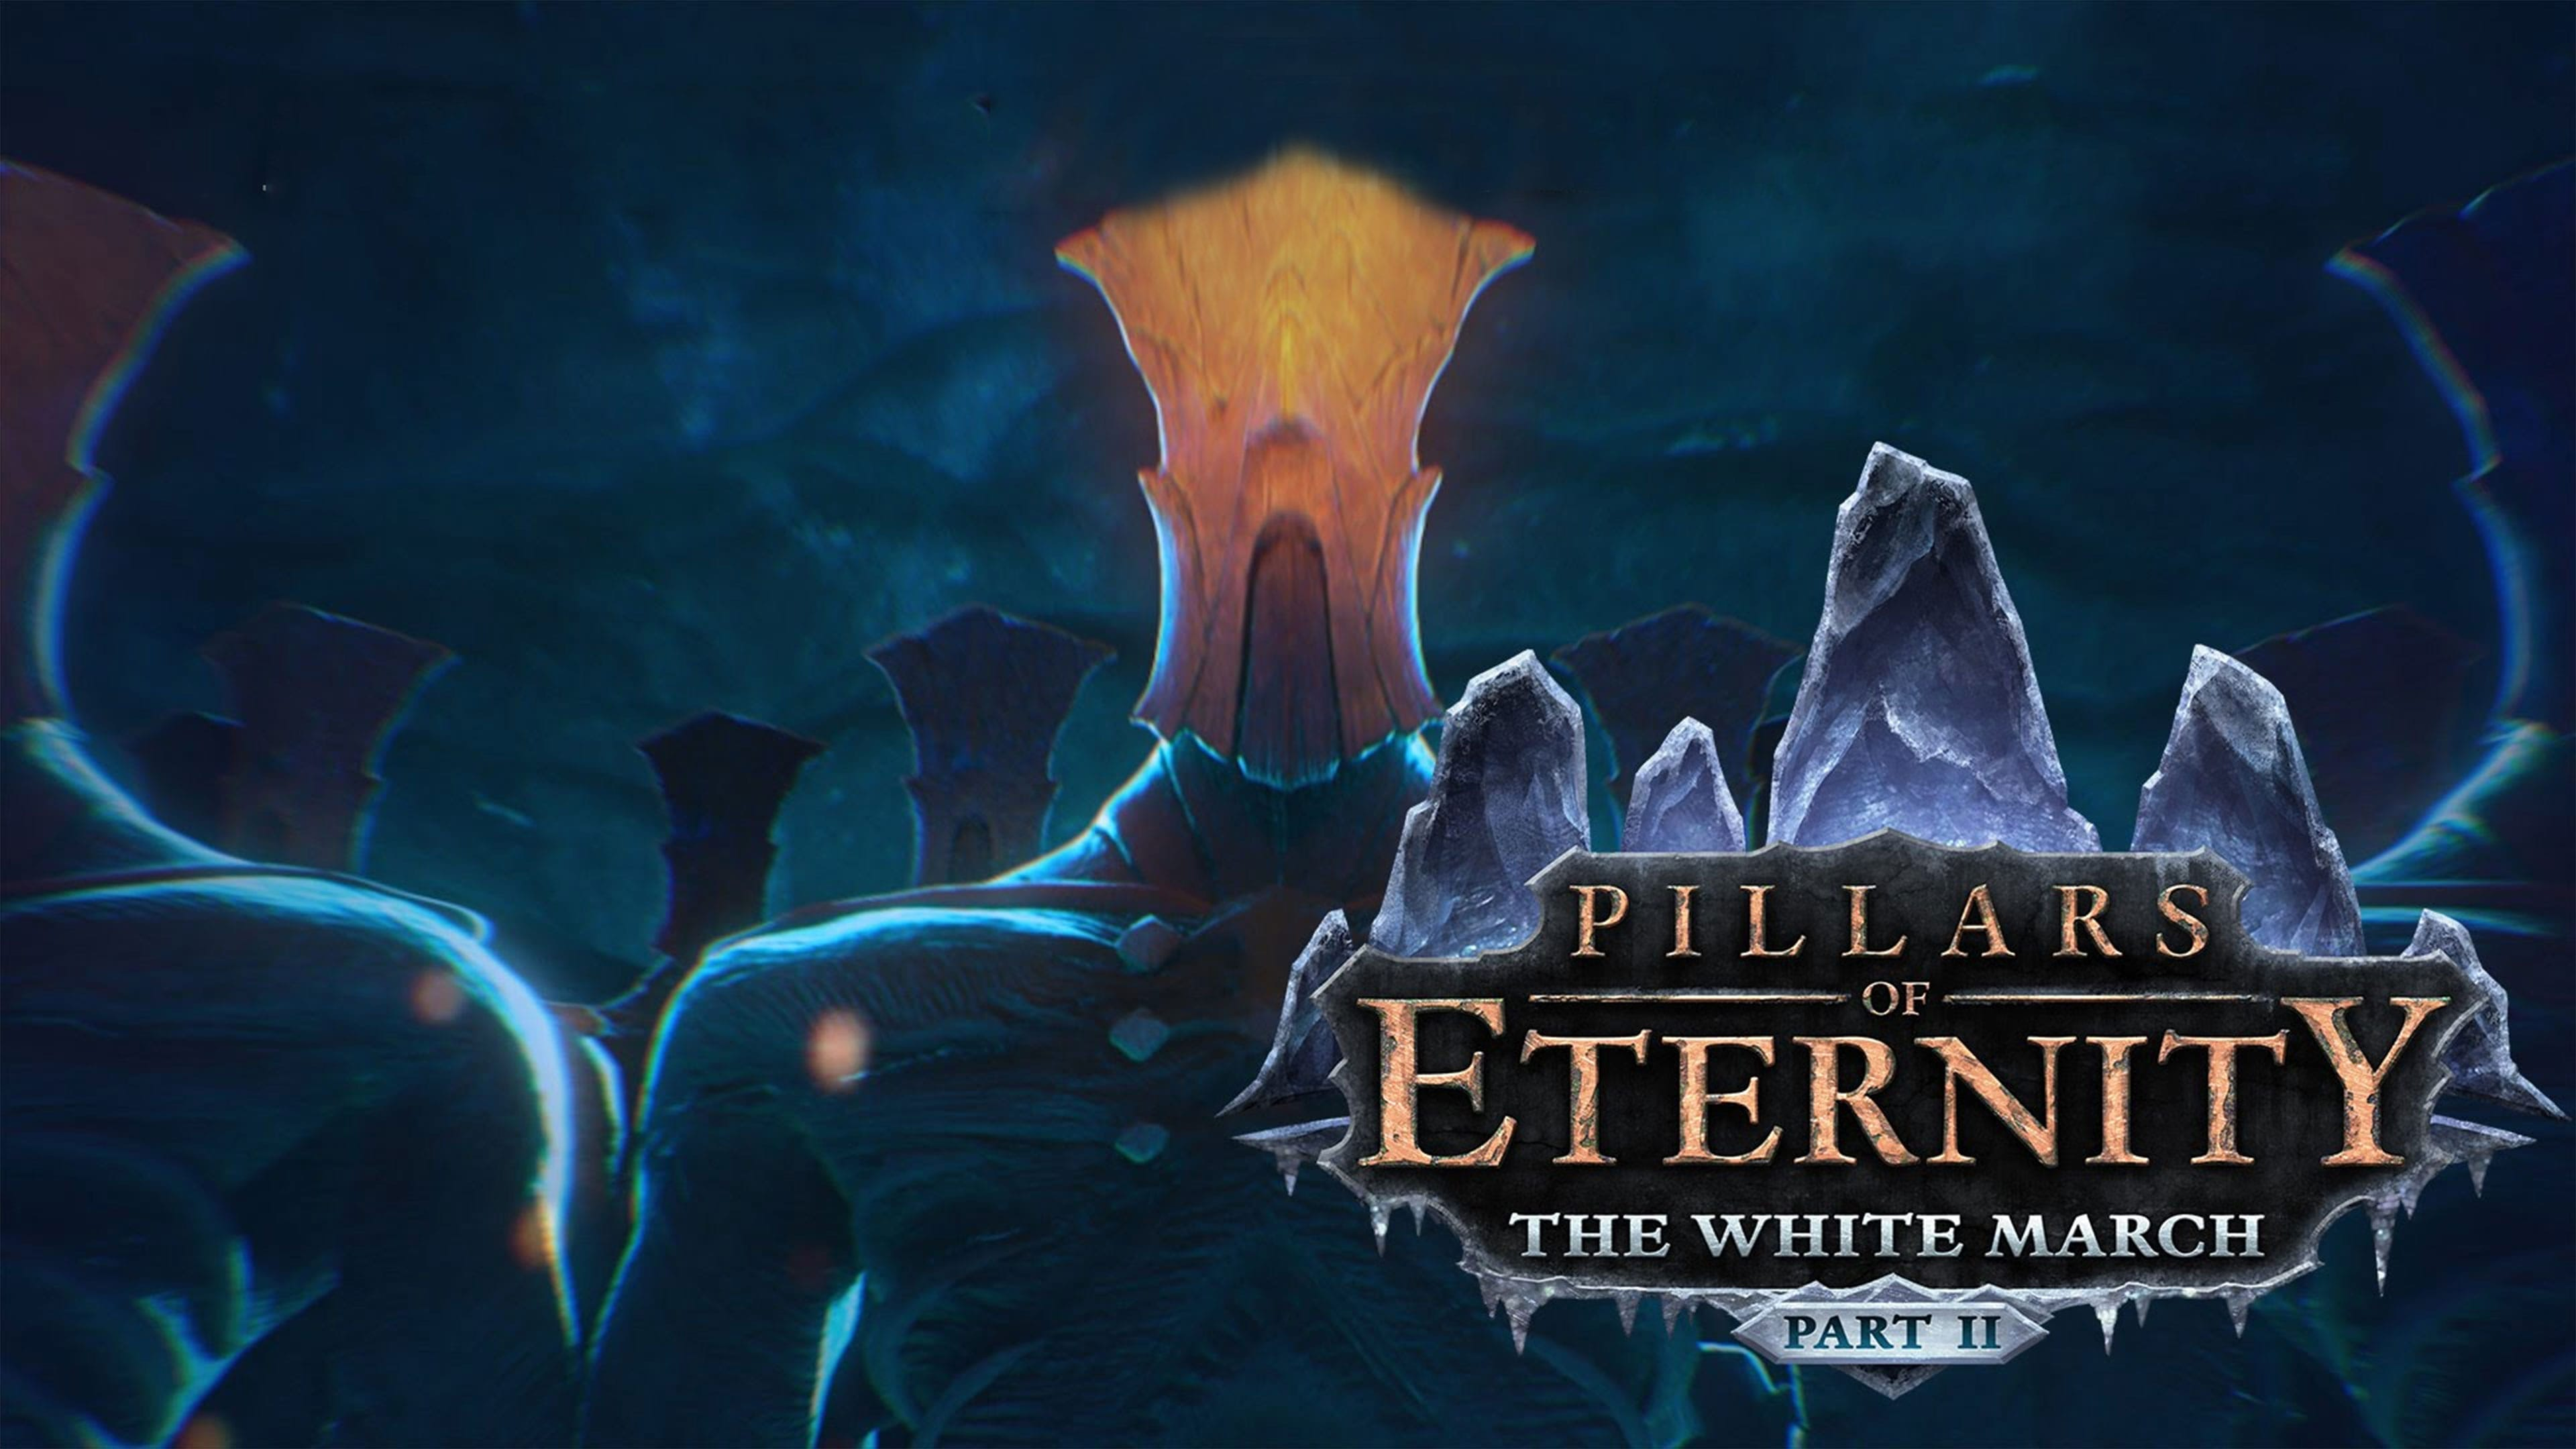 Pillars Of Eternity Wallpaper: Pillars Of Eternity: The White March 2 HD Wallpapers